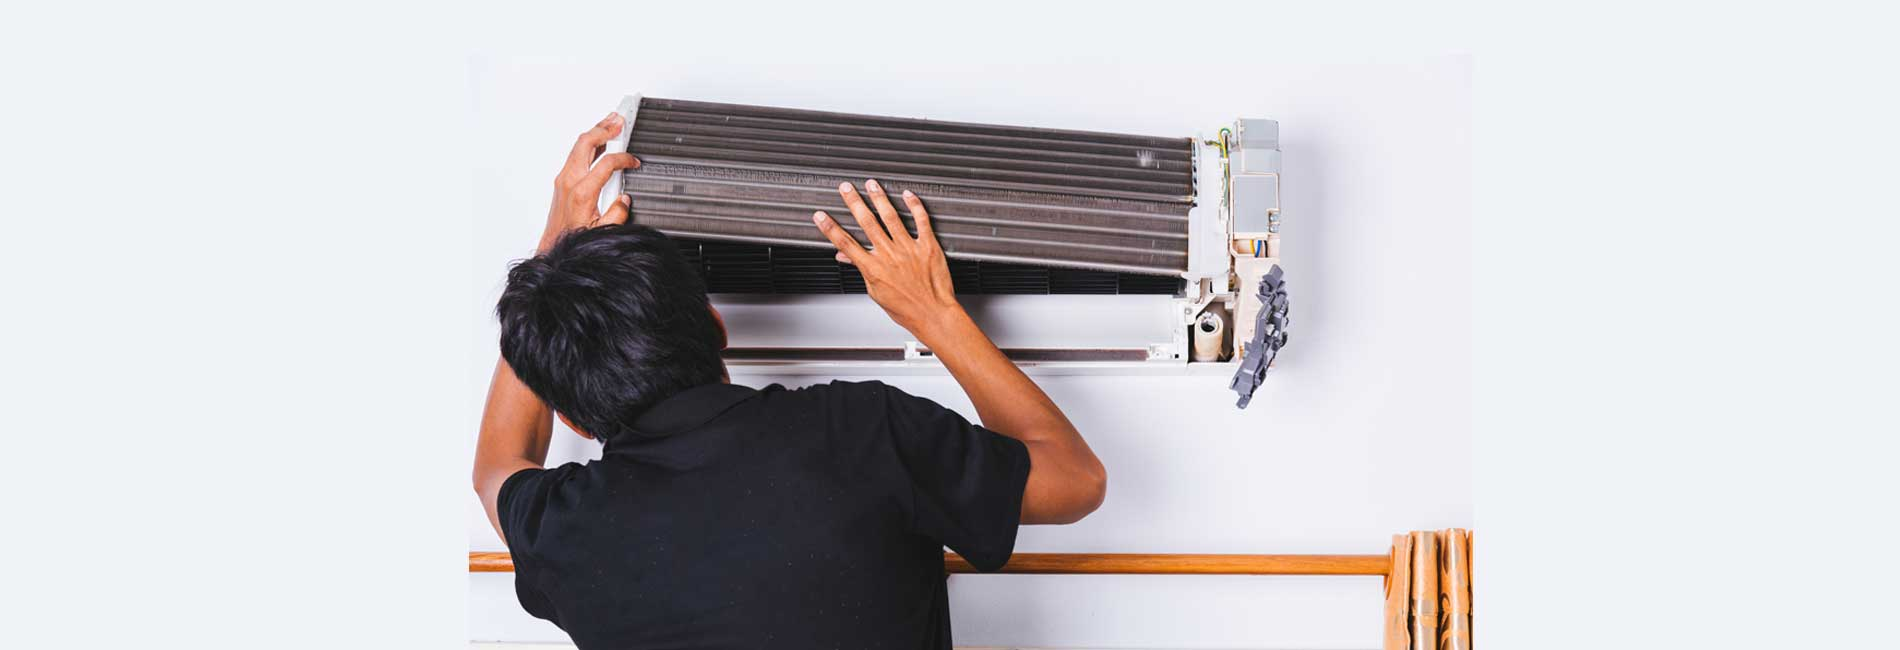 LG AC Uninstallation and Installation in Gerugambakkam